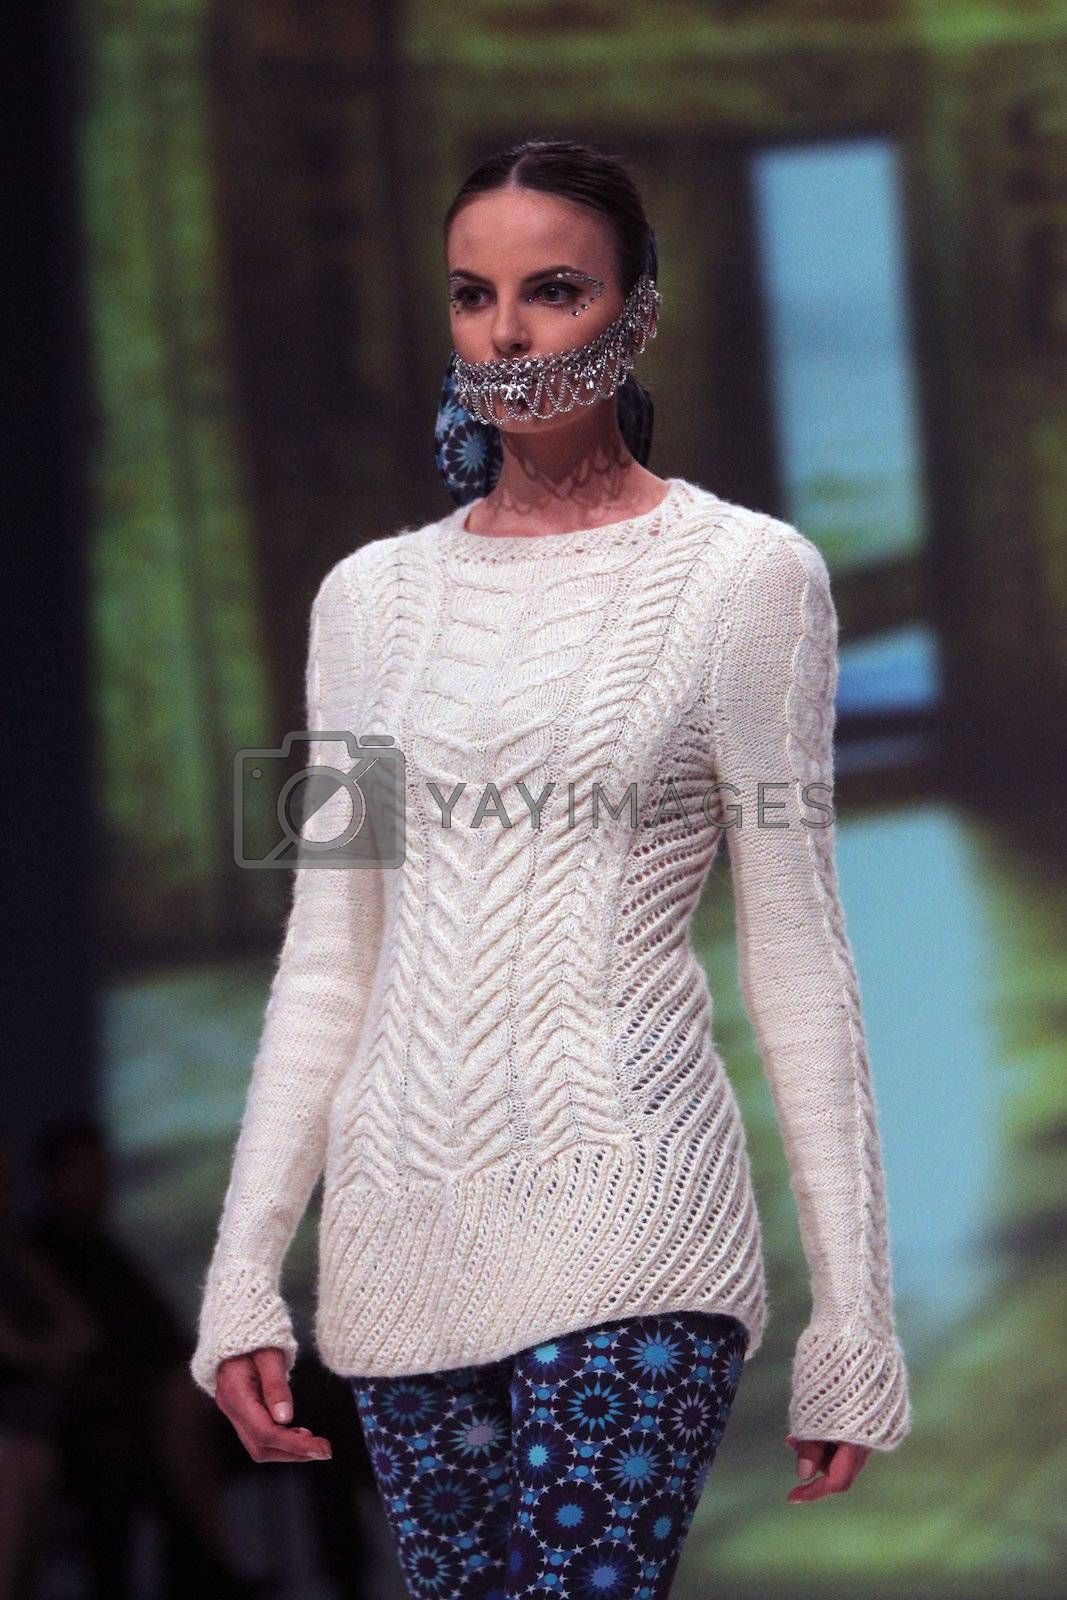 """ZAGREB, CROATIA - May 09: Fashion model wears clothes made by TRAMP IN DISGUISE on """"ZAGREB FASHION WEEK"""" show on May 09, 2013 in Zagreb, Croatia."""